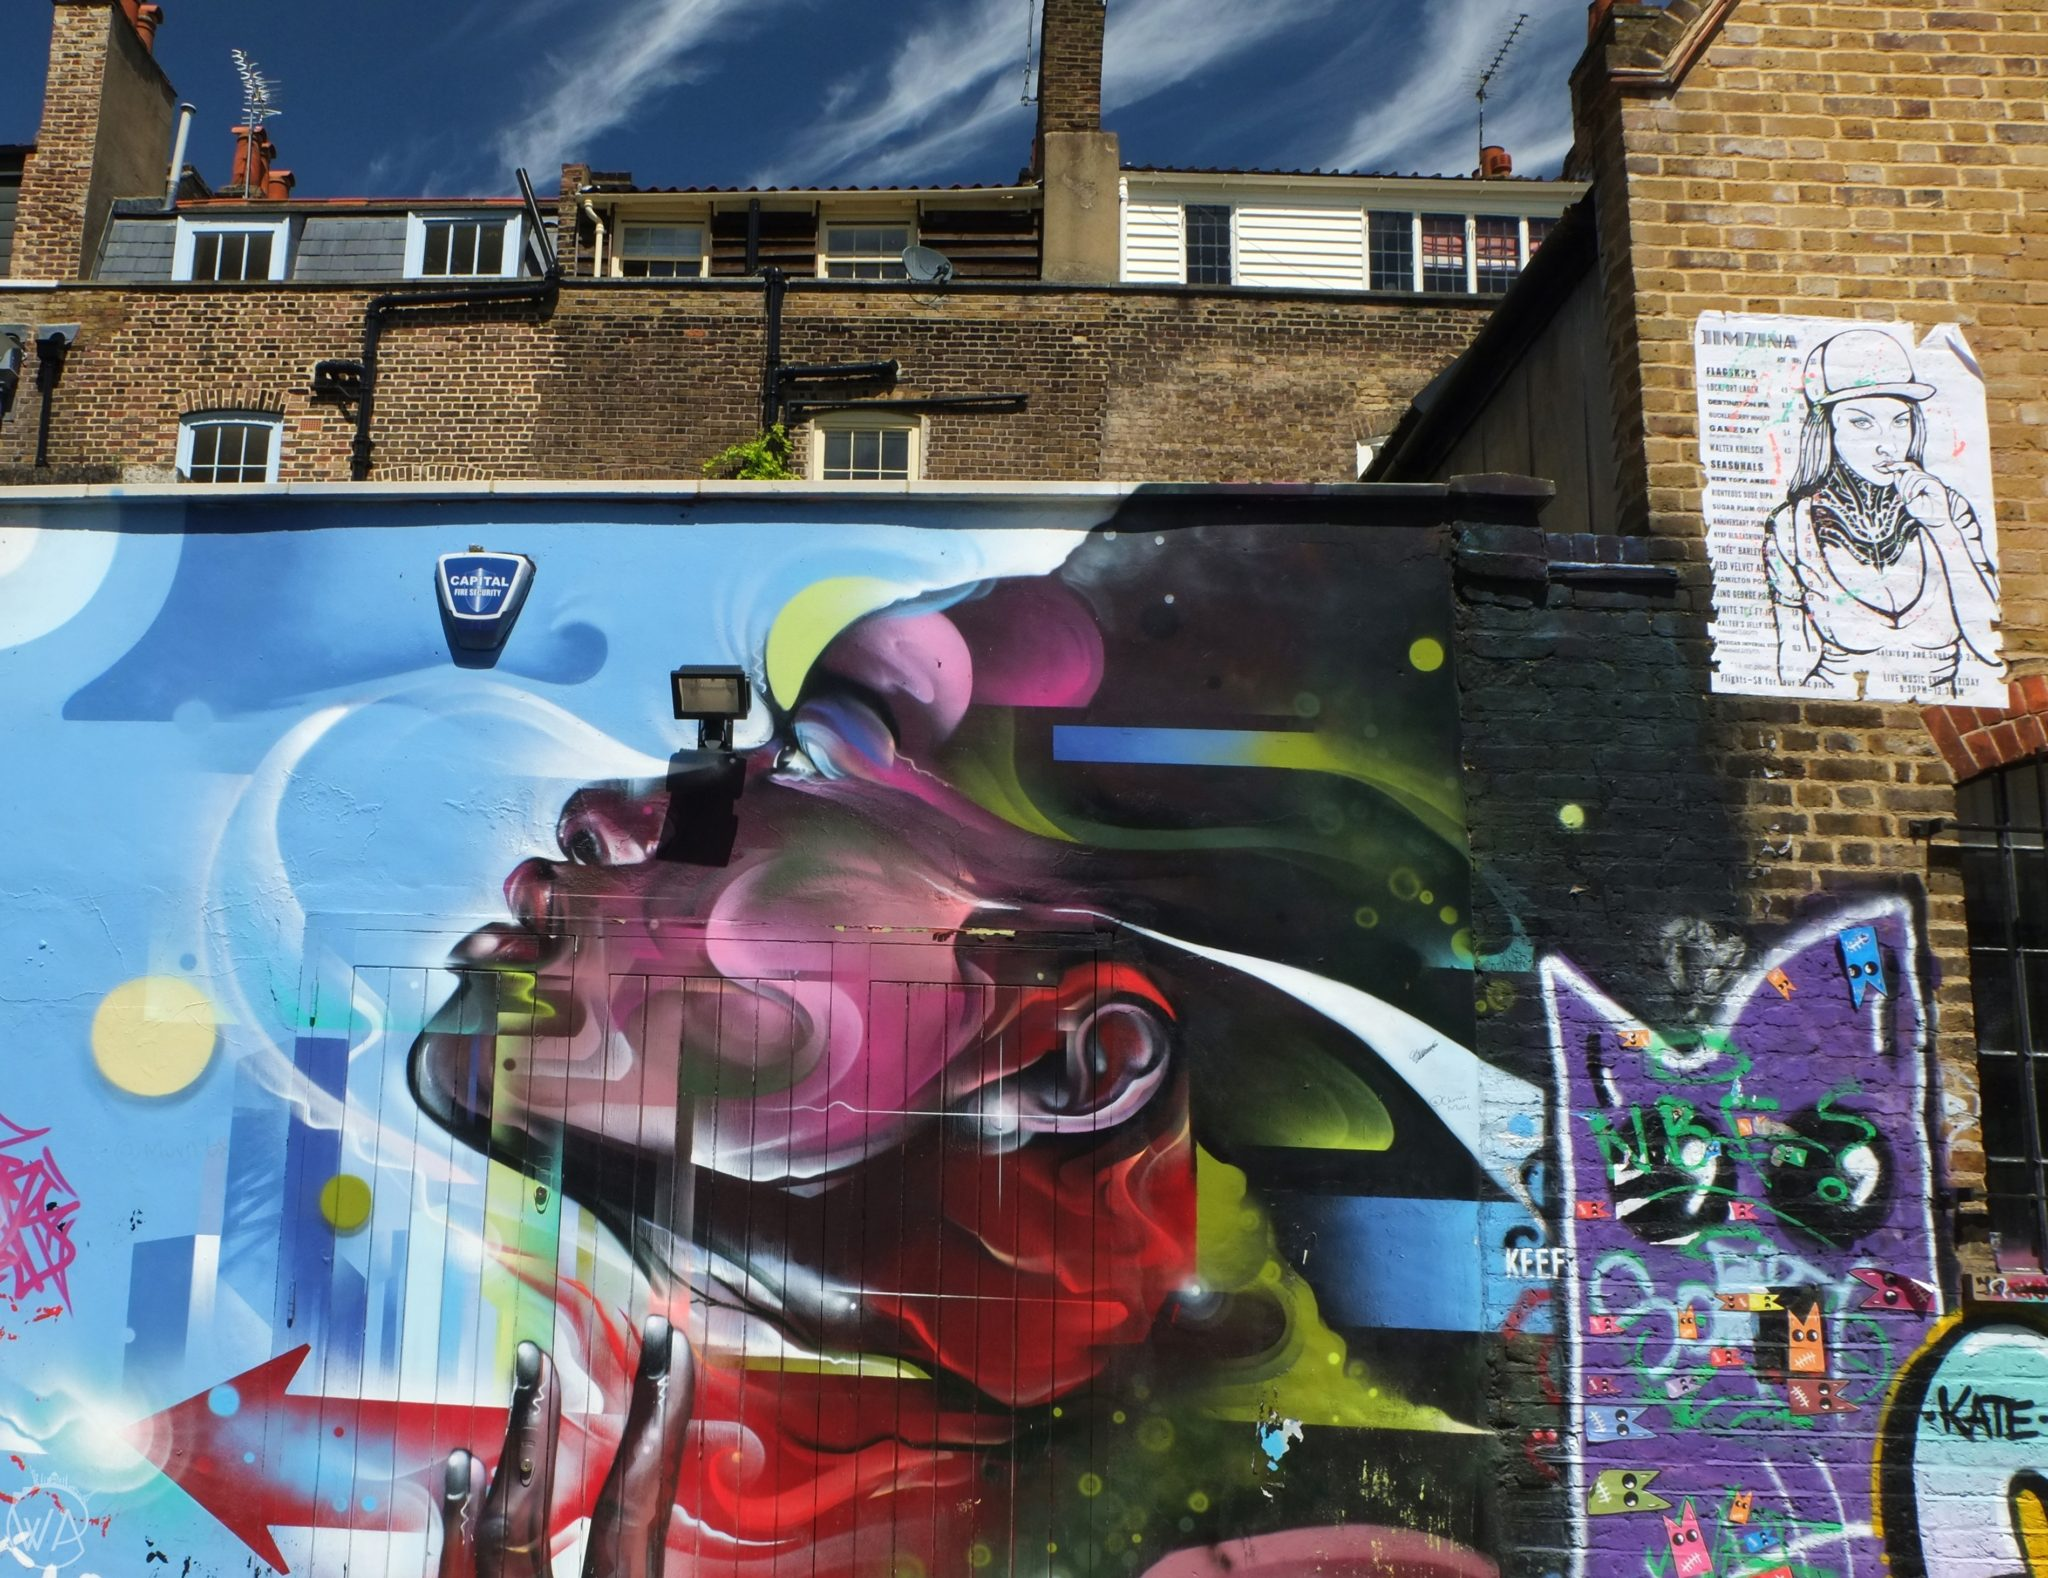 London street art with a colourful girl